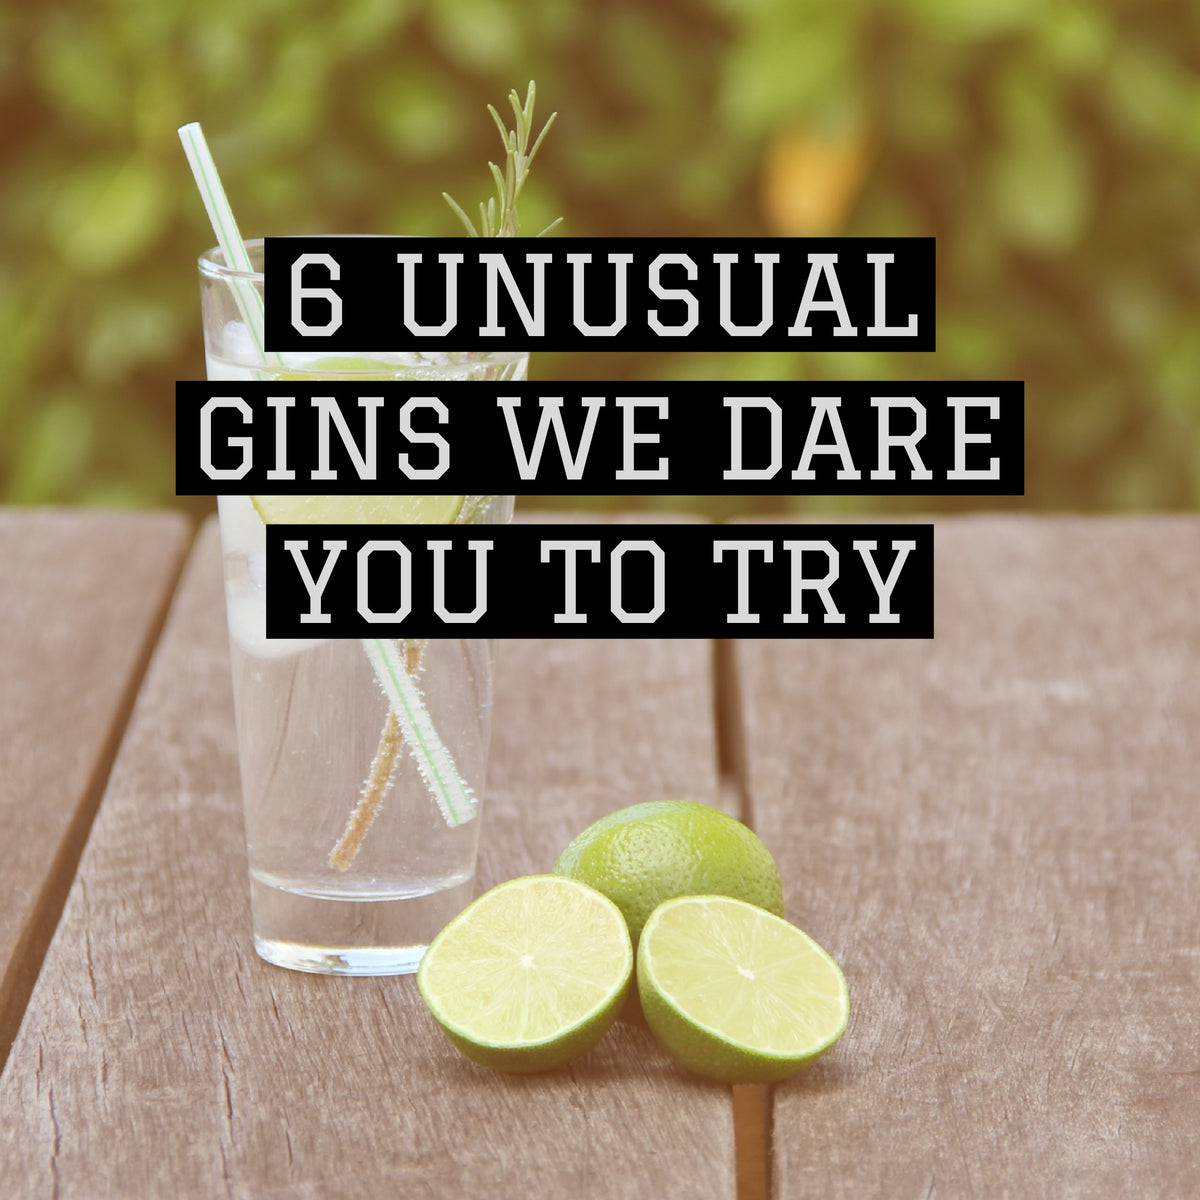 6 unusual gins we dare you to try